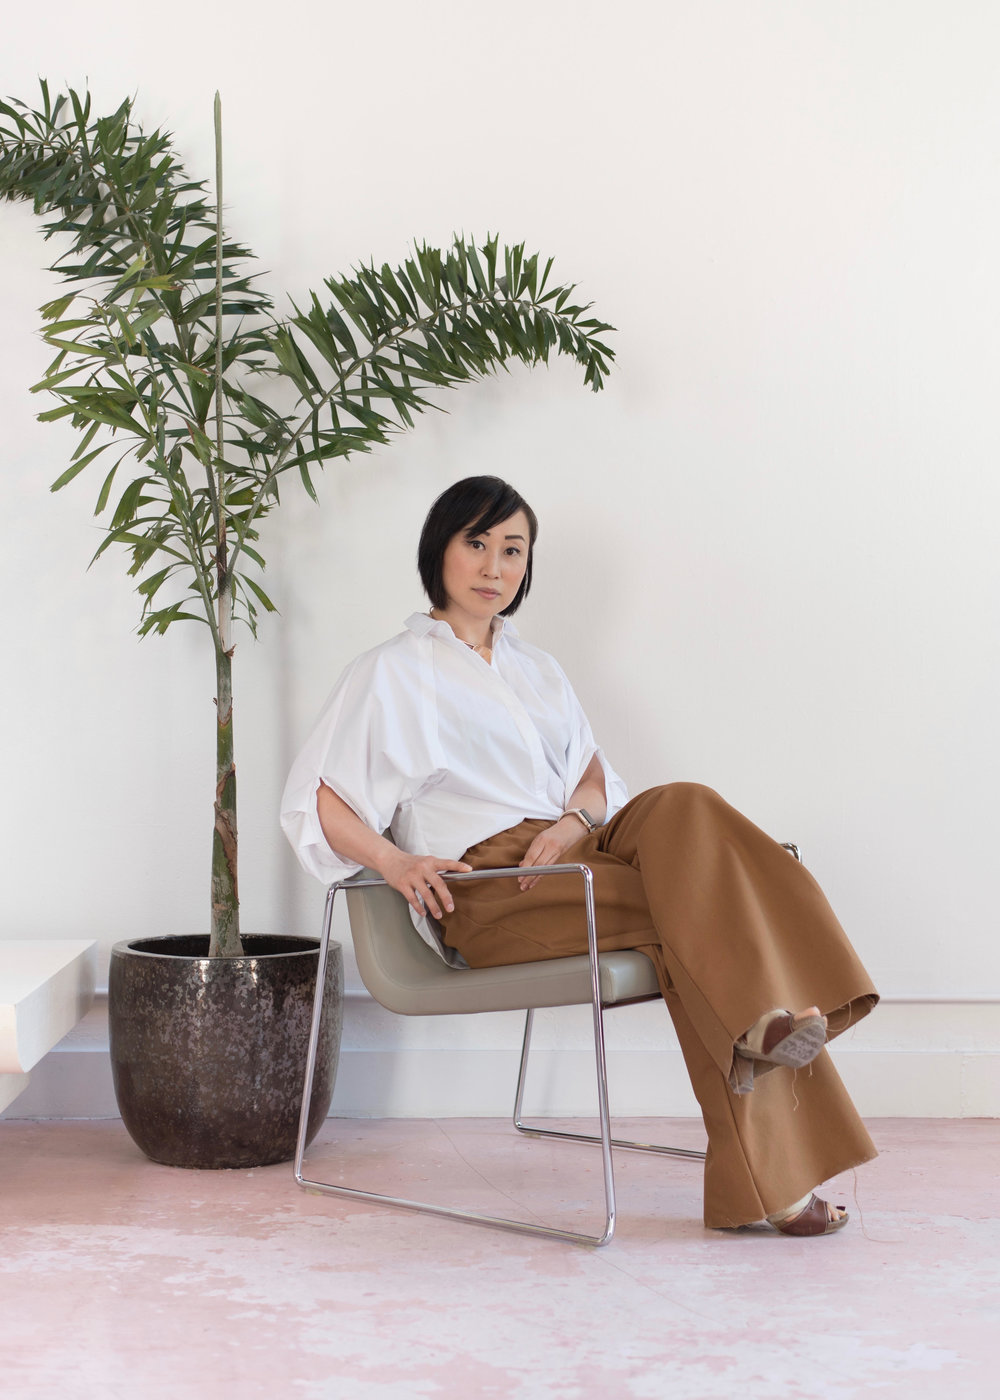 Suk Chai Designer of Schai Speaks to Ayesha Kohli of Creative Sparq